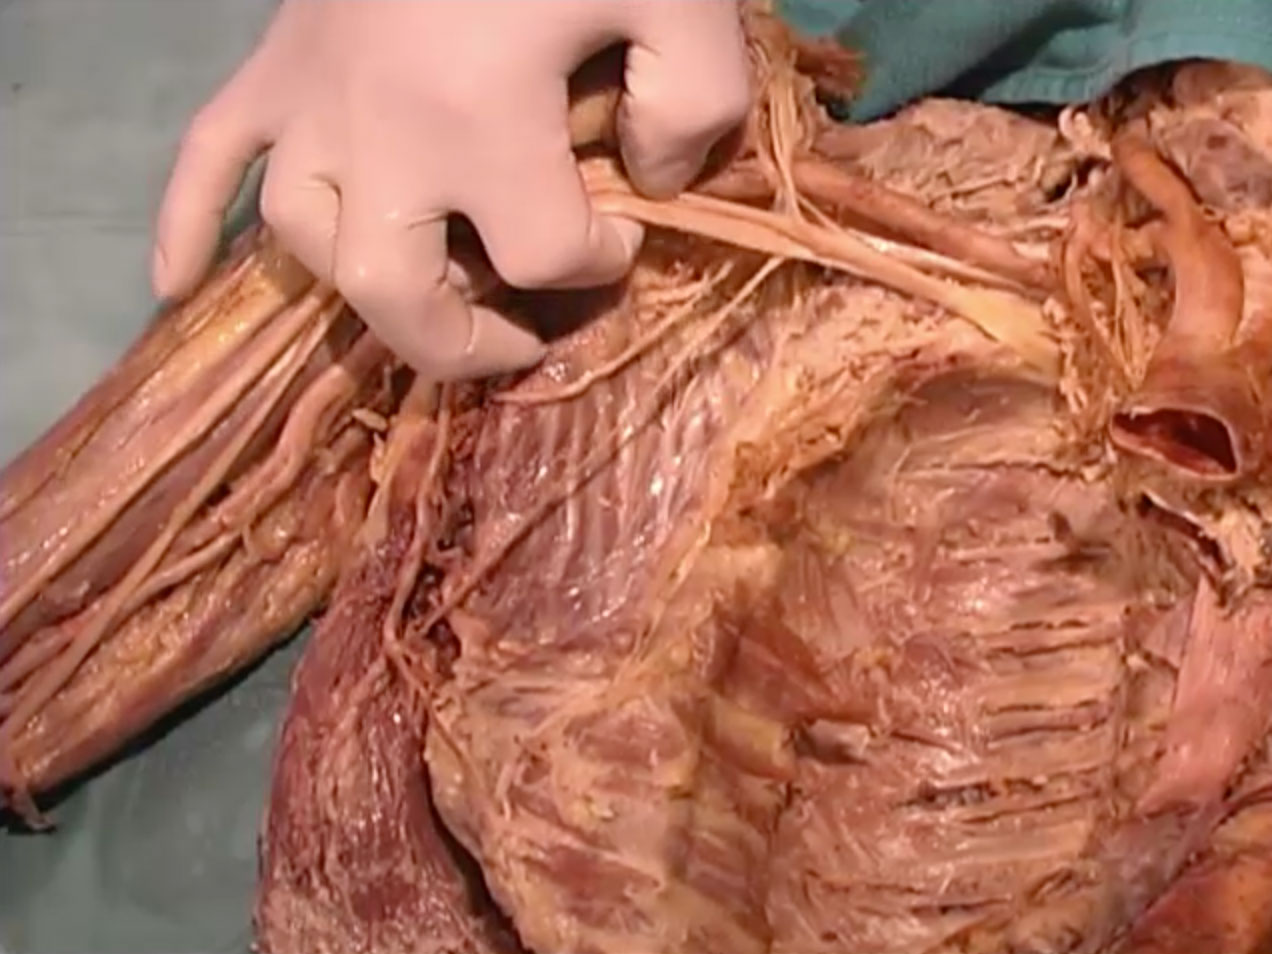 Picture from Dissection 17 Cutaneous Veins and Axilla